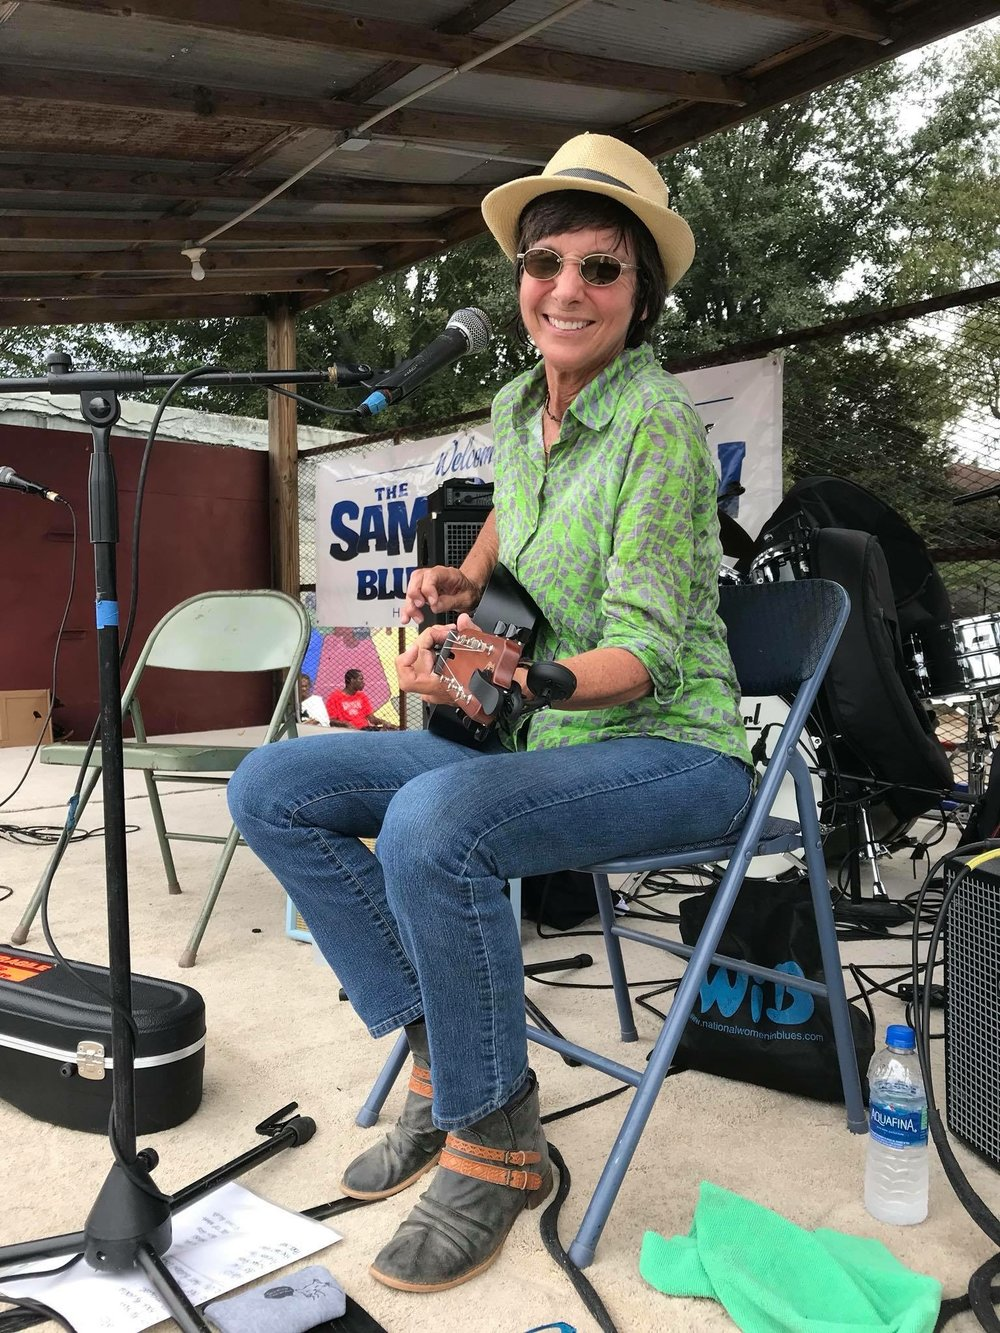 Sam Chatmon Blues Festival 2018 Hollandale, MS photo by Euphus Ruth